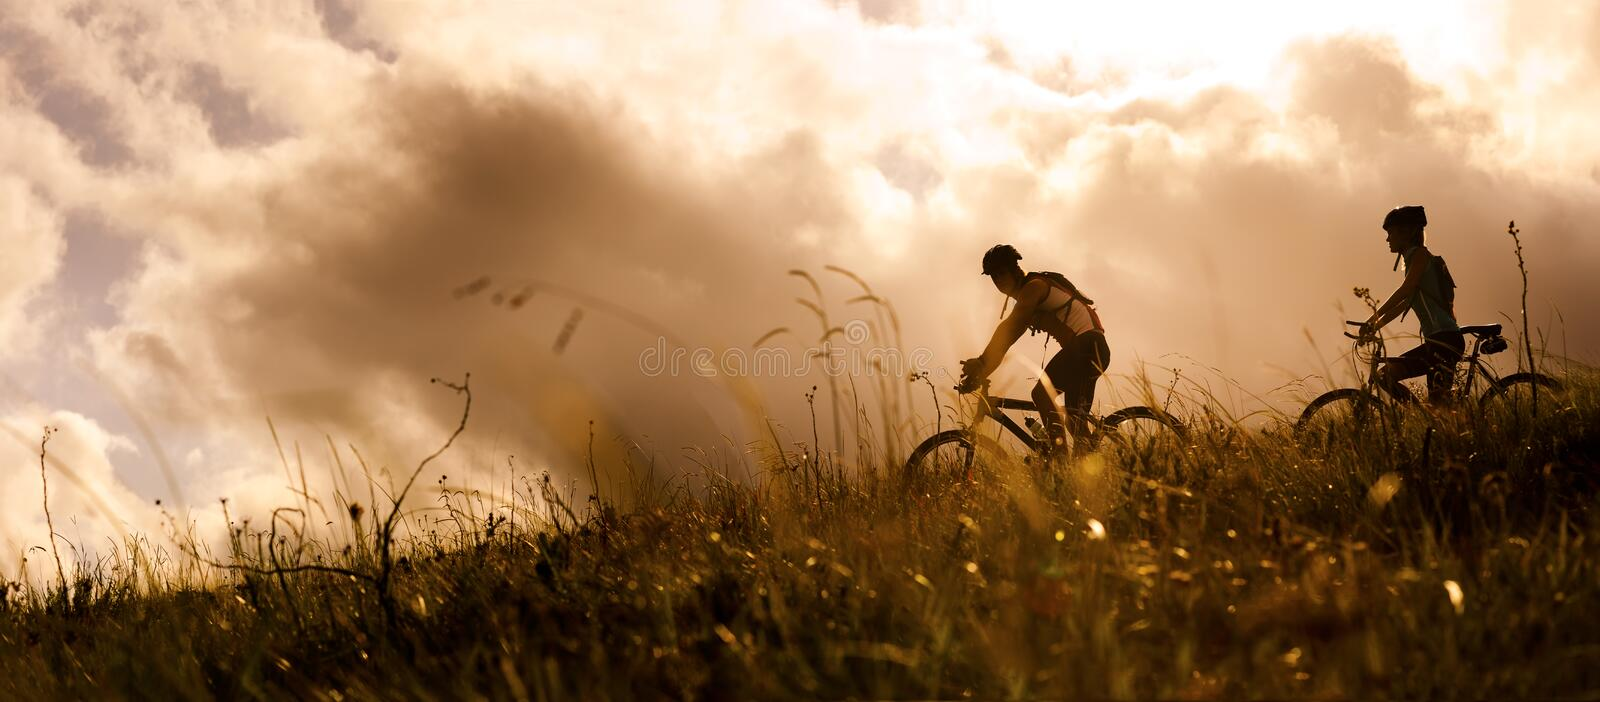 Download Mountainbike Couple Outdoors Stock Image - Image of healthy, casual: 18537177